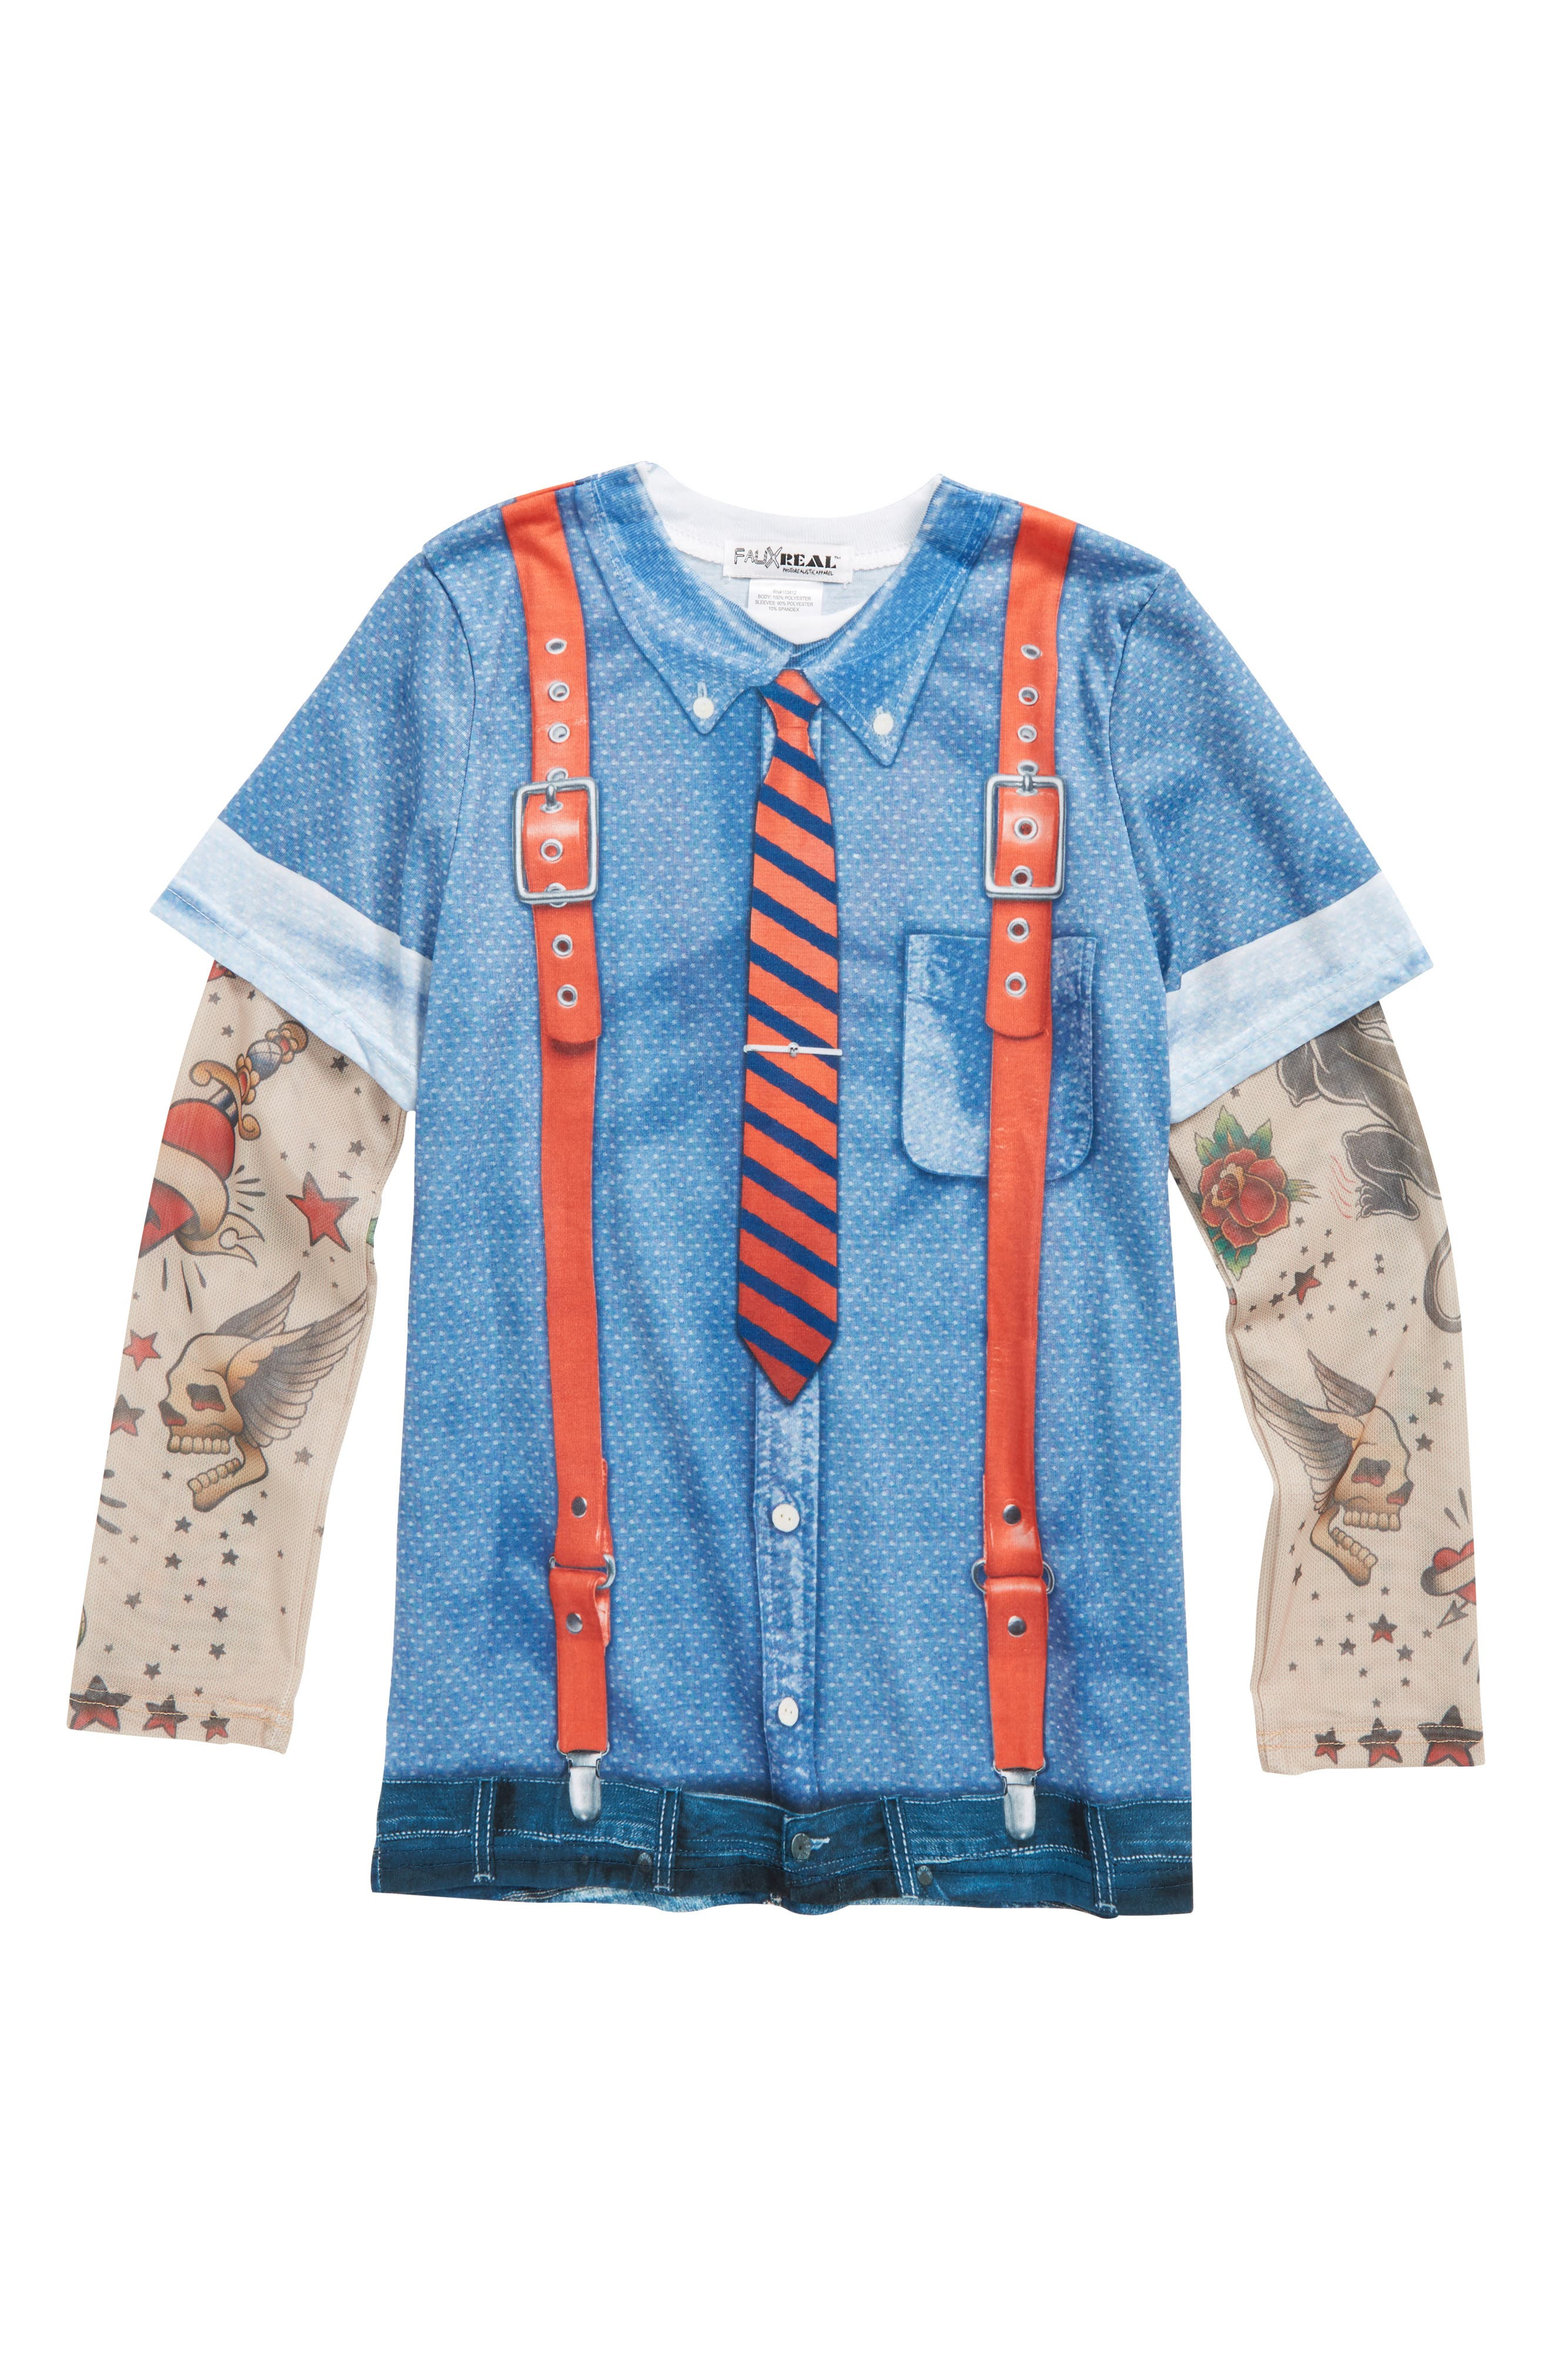 Hipster Tie & Suspenders T-Shirt with Tattoo Print Sleeves,                             Main thumbnail 1, color,                             400